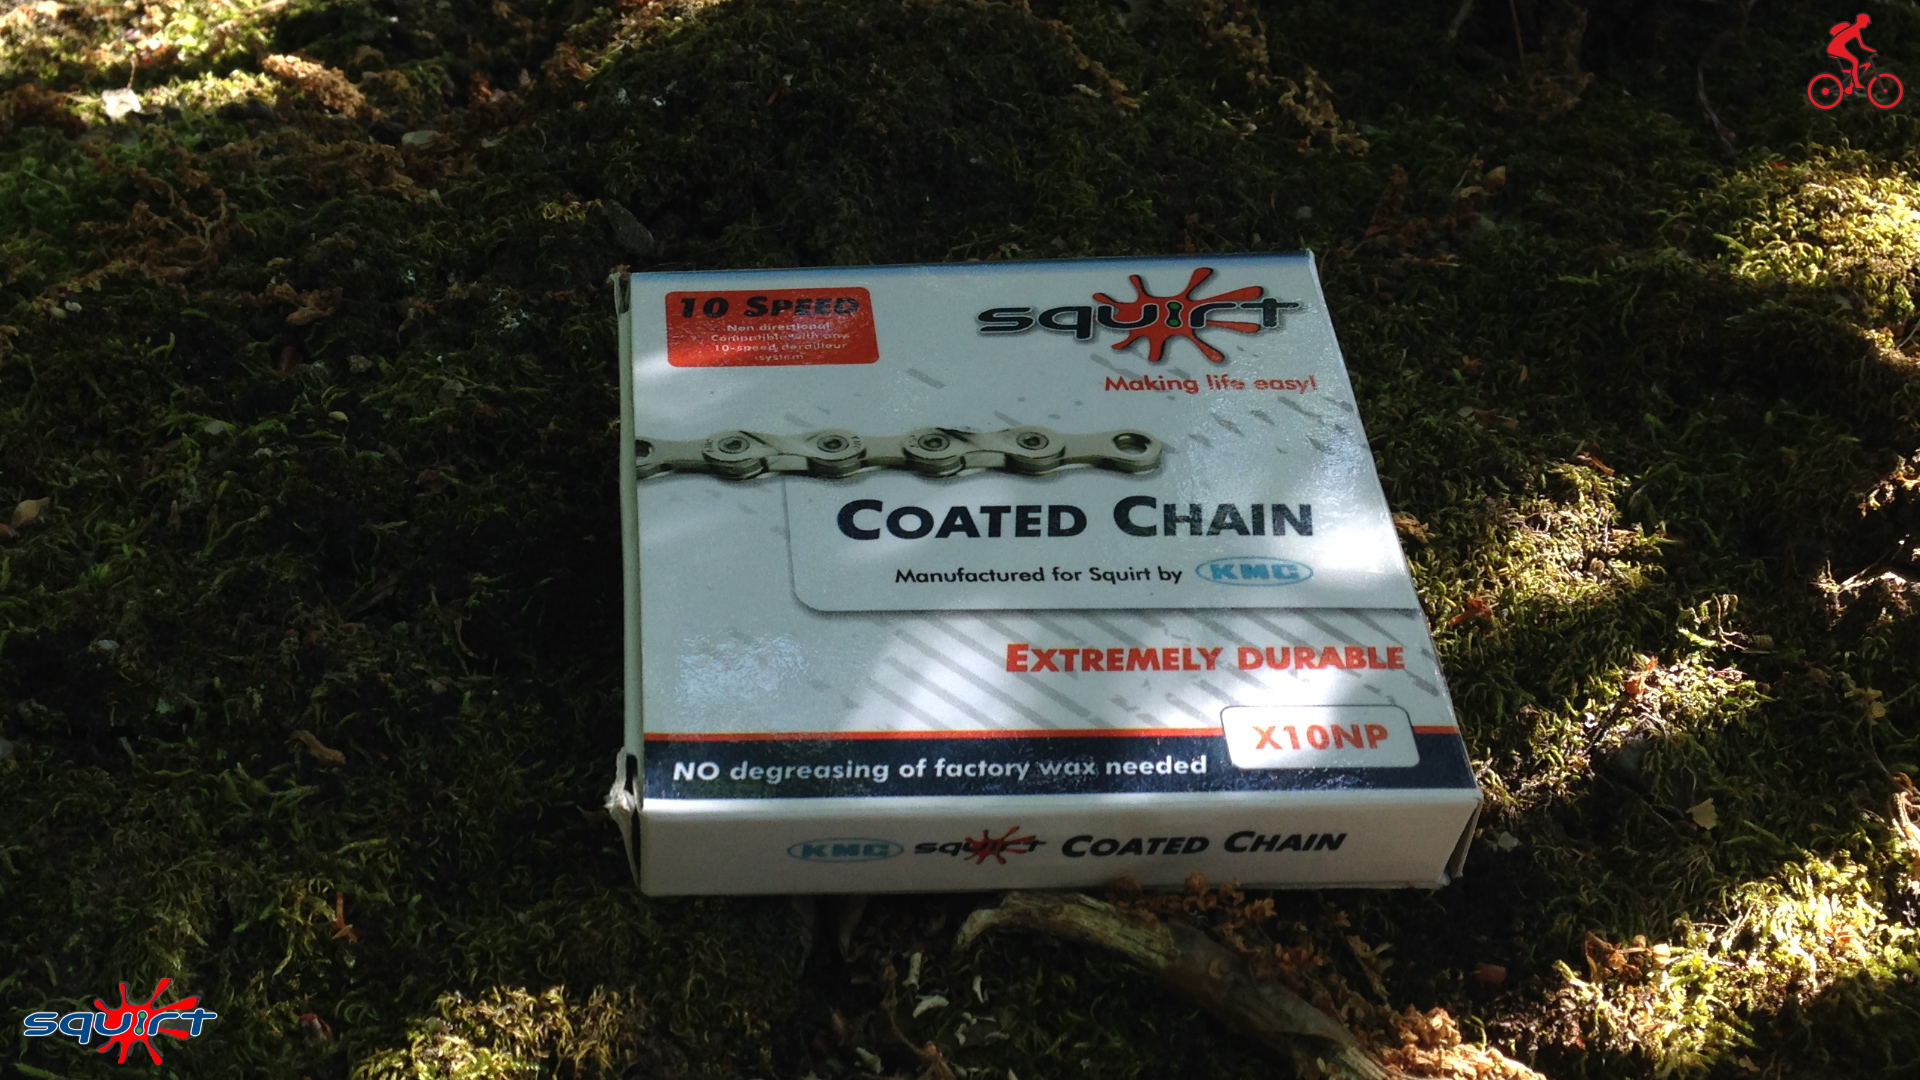 Squirt Coated Chain (6)